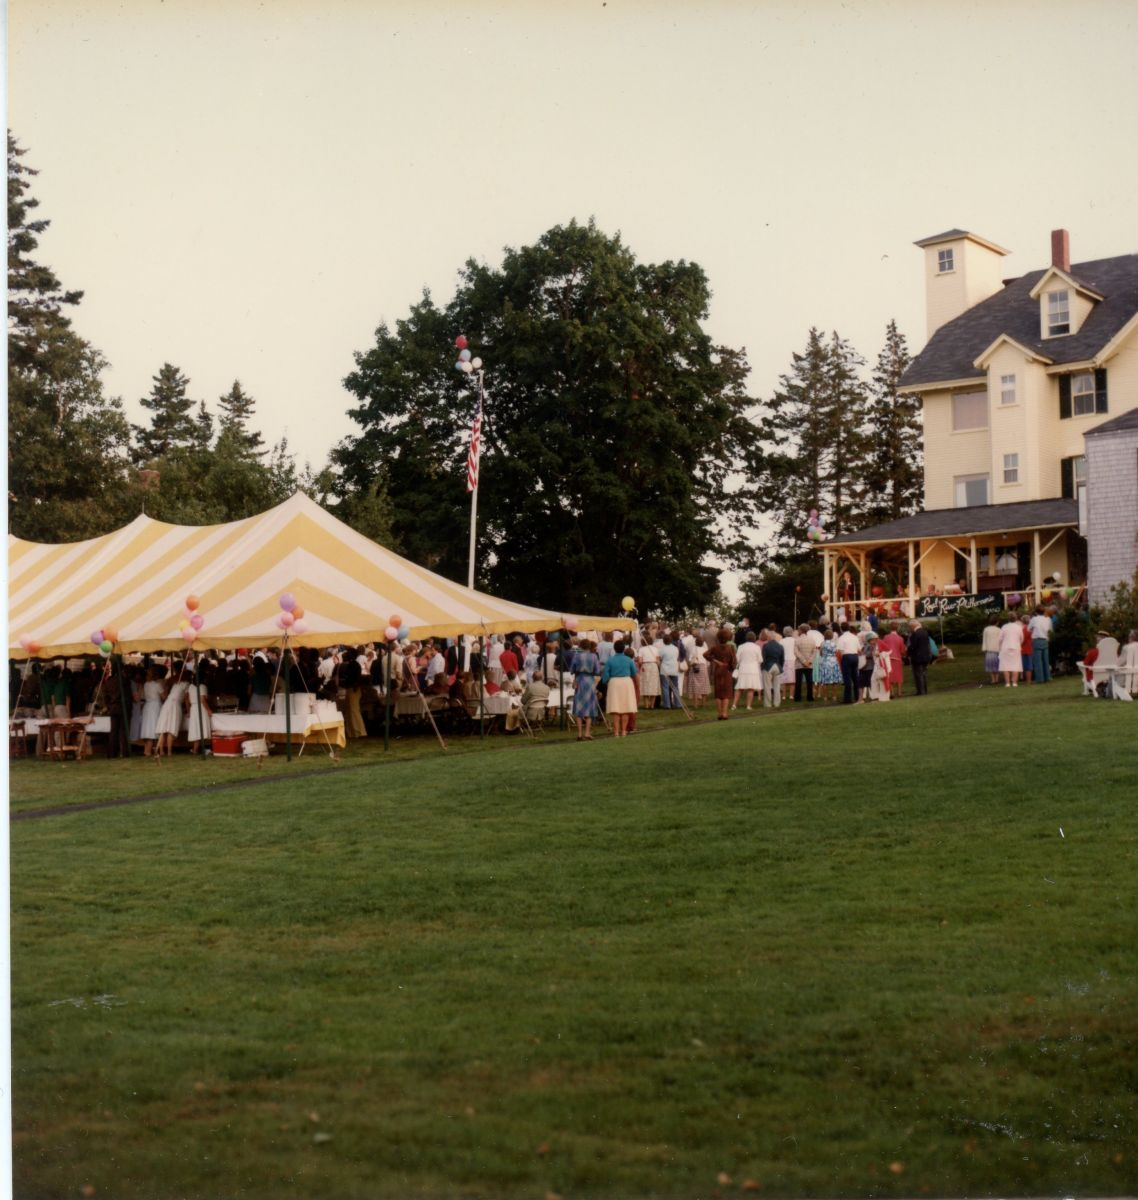 The Claremont Hotel 100th Anniversary Party